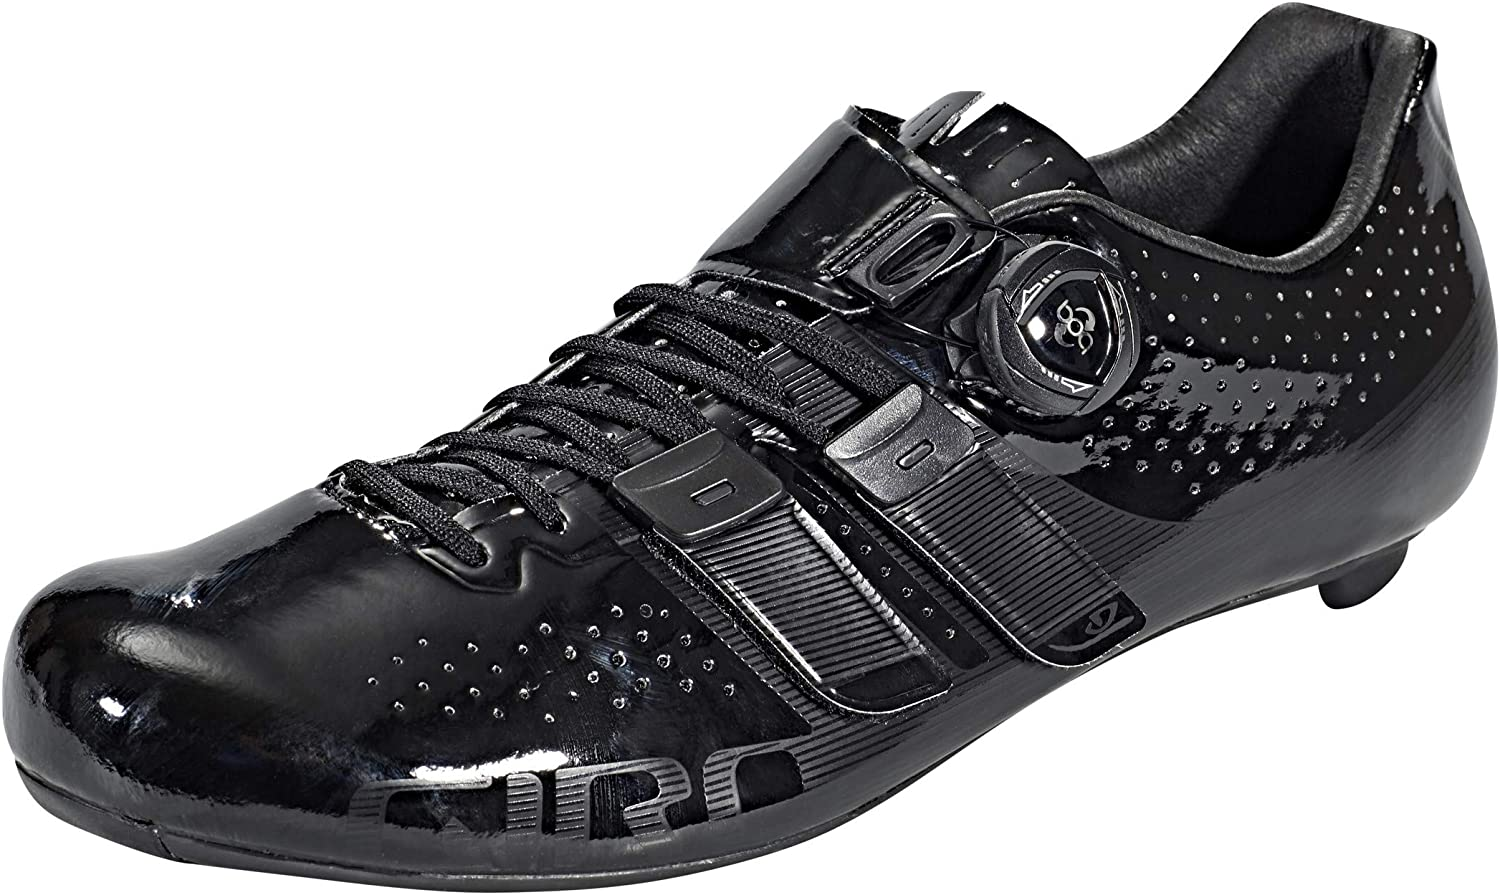 Giro New Free Shipping Outlet sale feature Men's Road Shoes Cycling